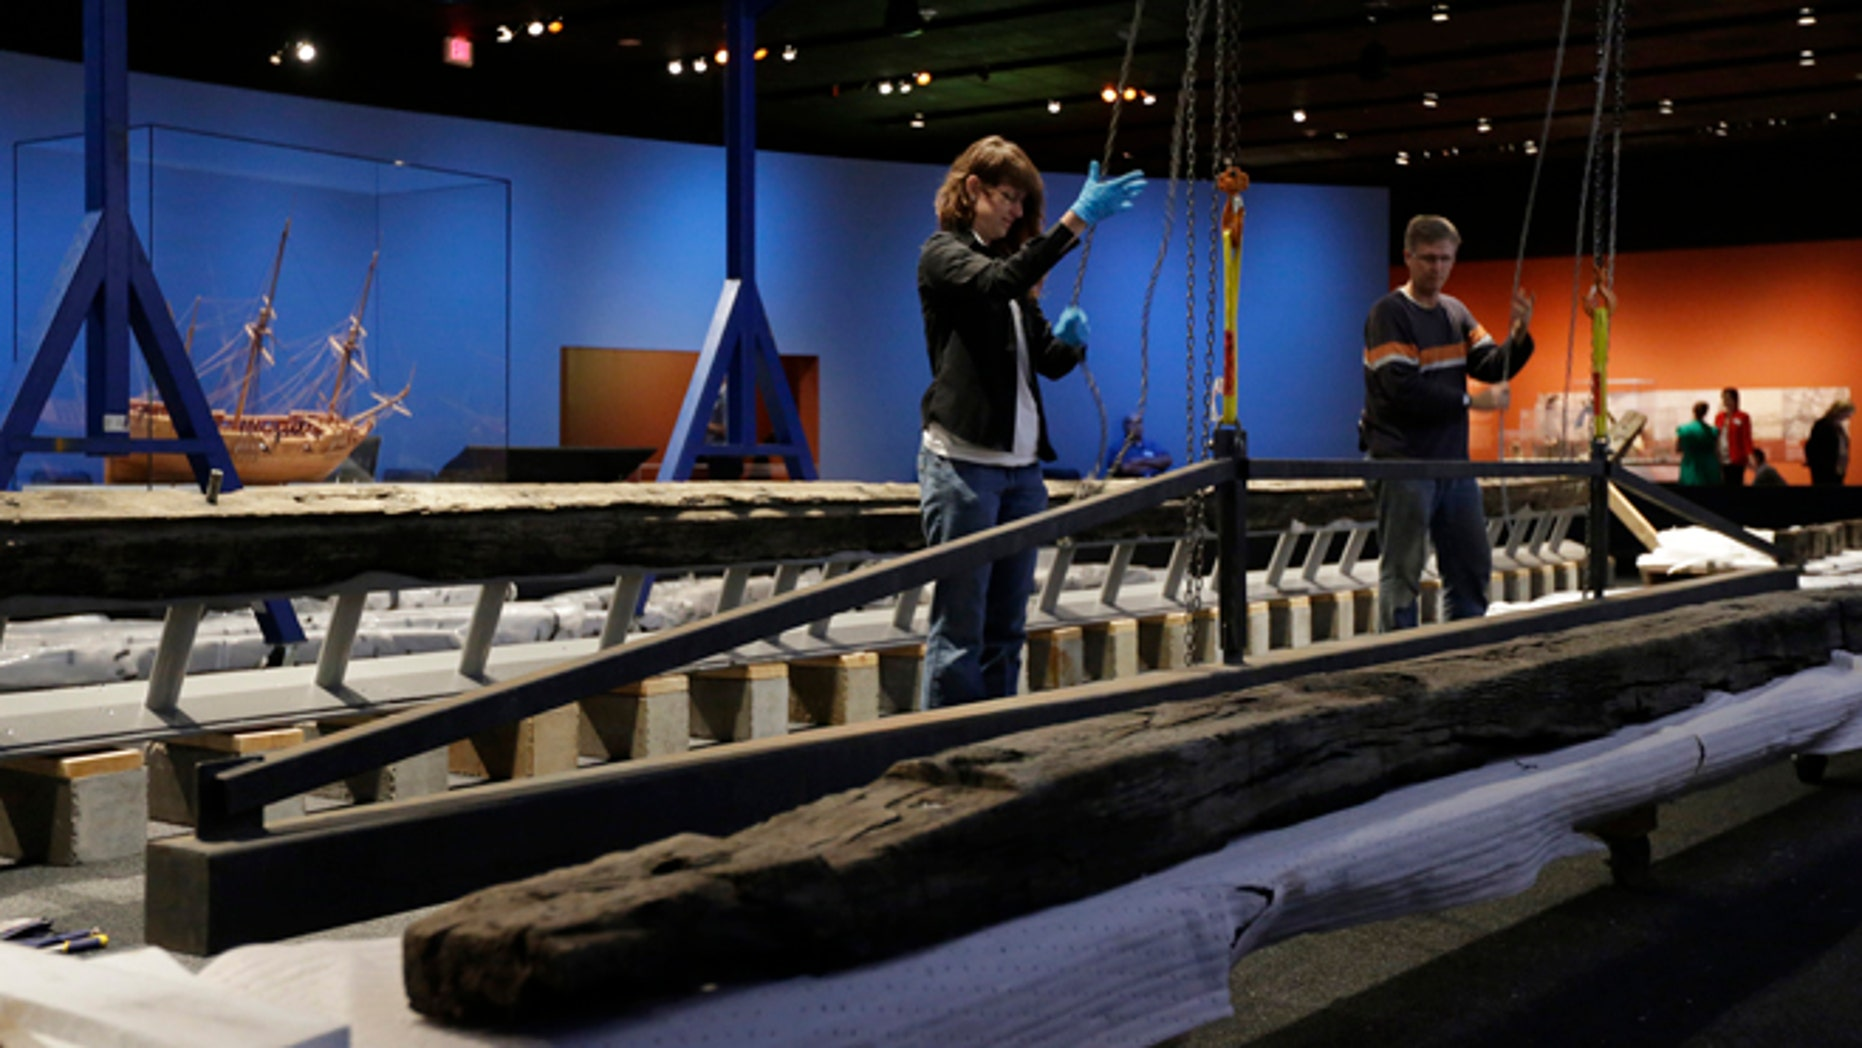 In this Oct. 22, 2014 photo work to reassemble the 54-foot oak French frigate La Belle begins at the Bullock Texas State History Museum in Austin, Texas.  Archaeologists are beginning to reassemble the remains of the ship recovered more than 300 years after the vessel was lost in a storm off the coast of Texas. (AP Photo/Eric Gay)